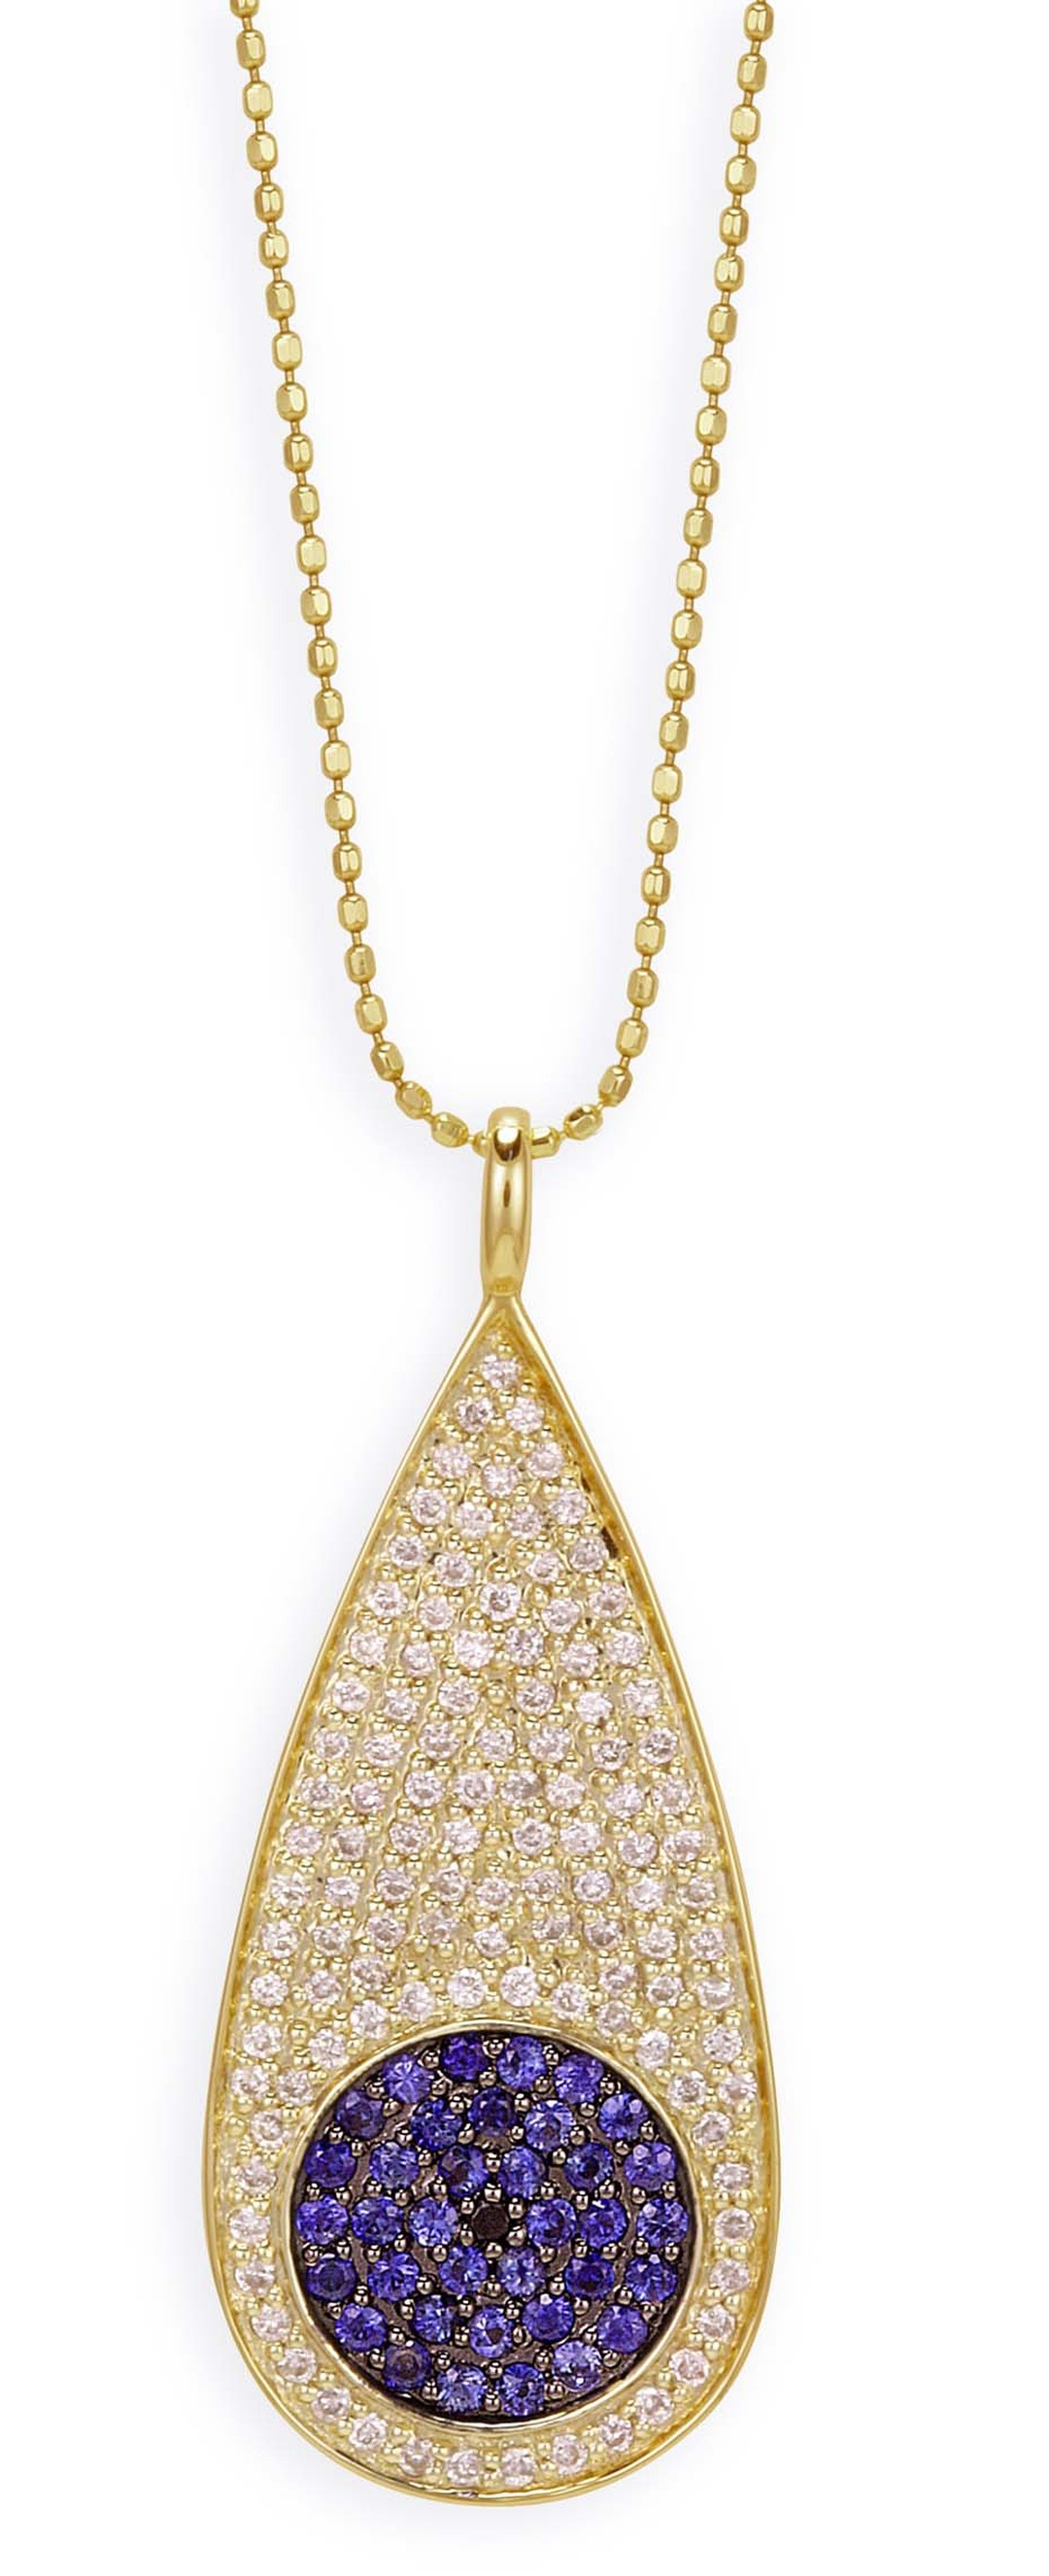 Sydney Evan yellow gold Teardrop Evil Eye necklace featuring pavé blue sapphires and diamonds.